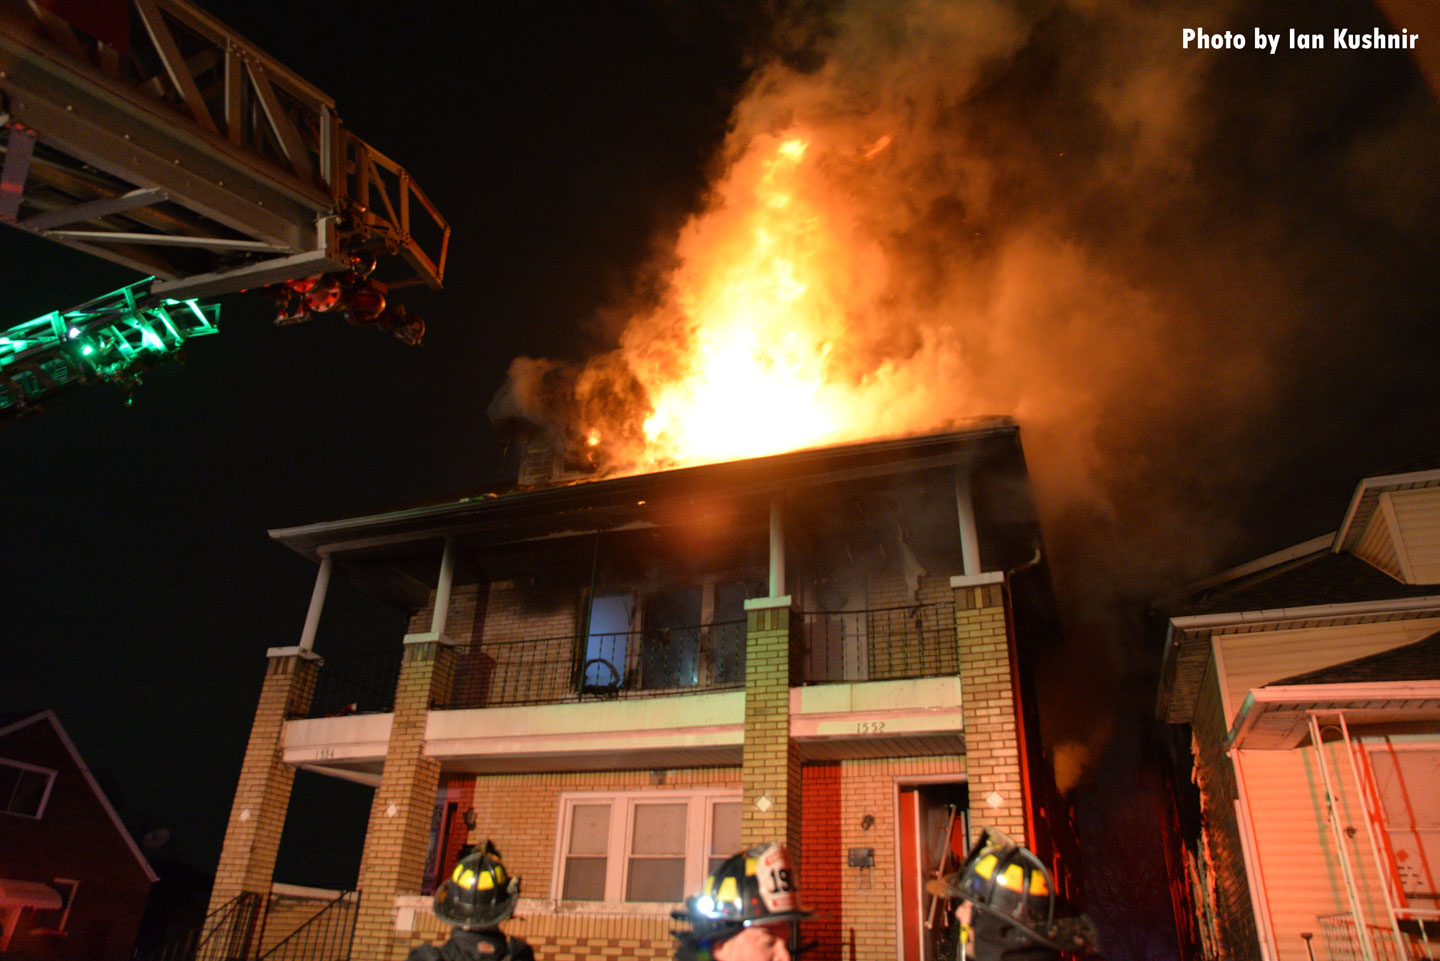 Firefighters responded to a fire in a multi-family dwelling in Dearborn, Michigan.